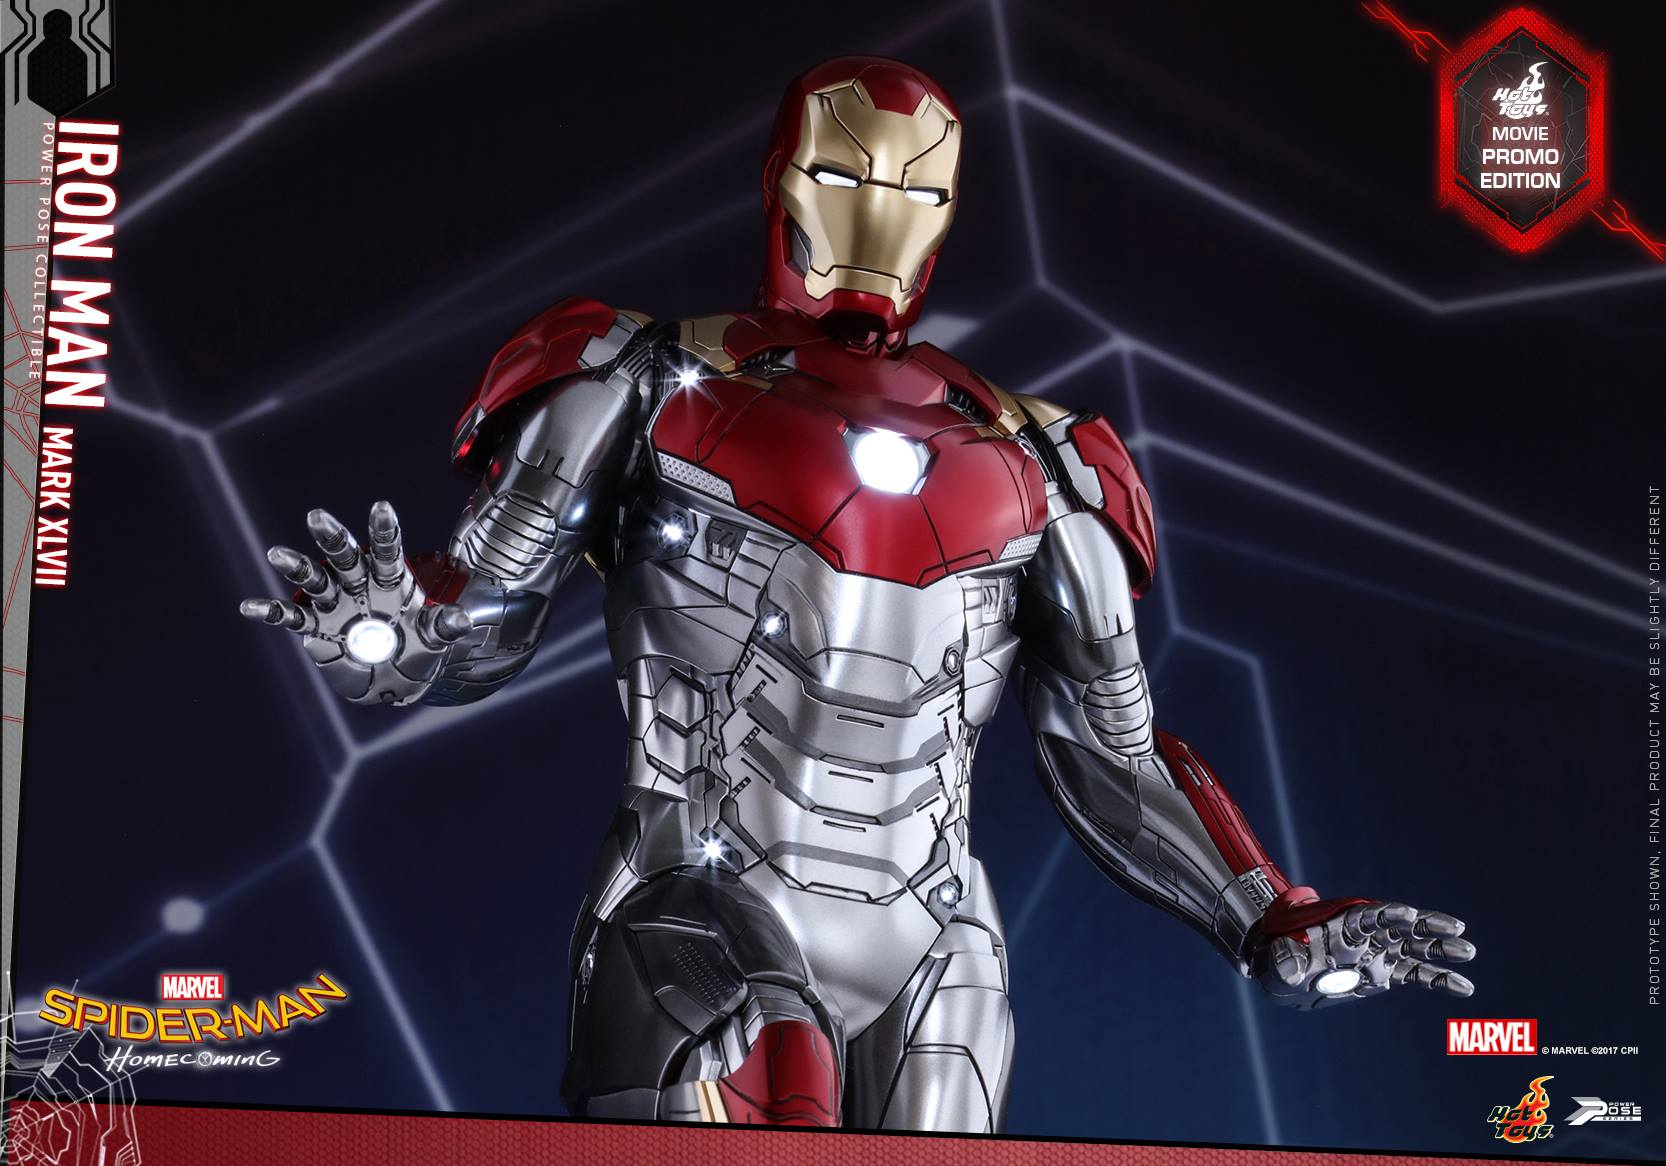 Spider-Man: Homecoming-1/6 scale Mark XLVII Power Pose Collectible Figure Coming Soon